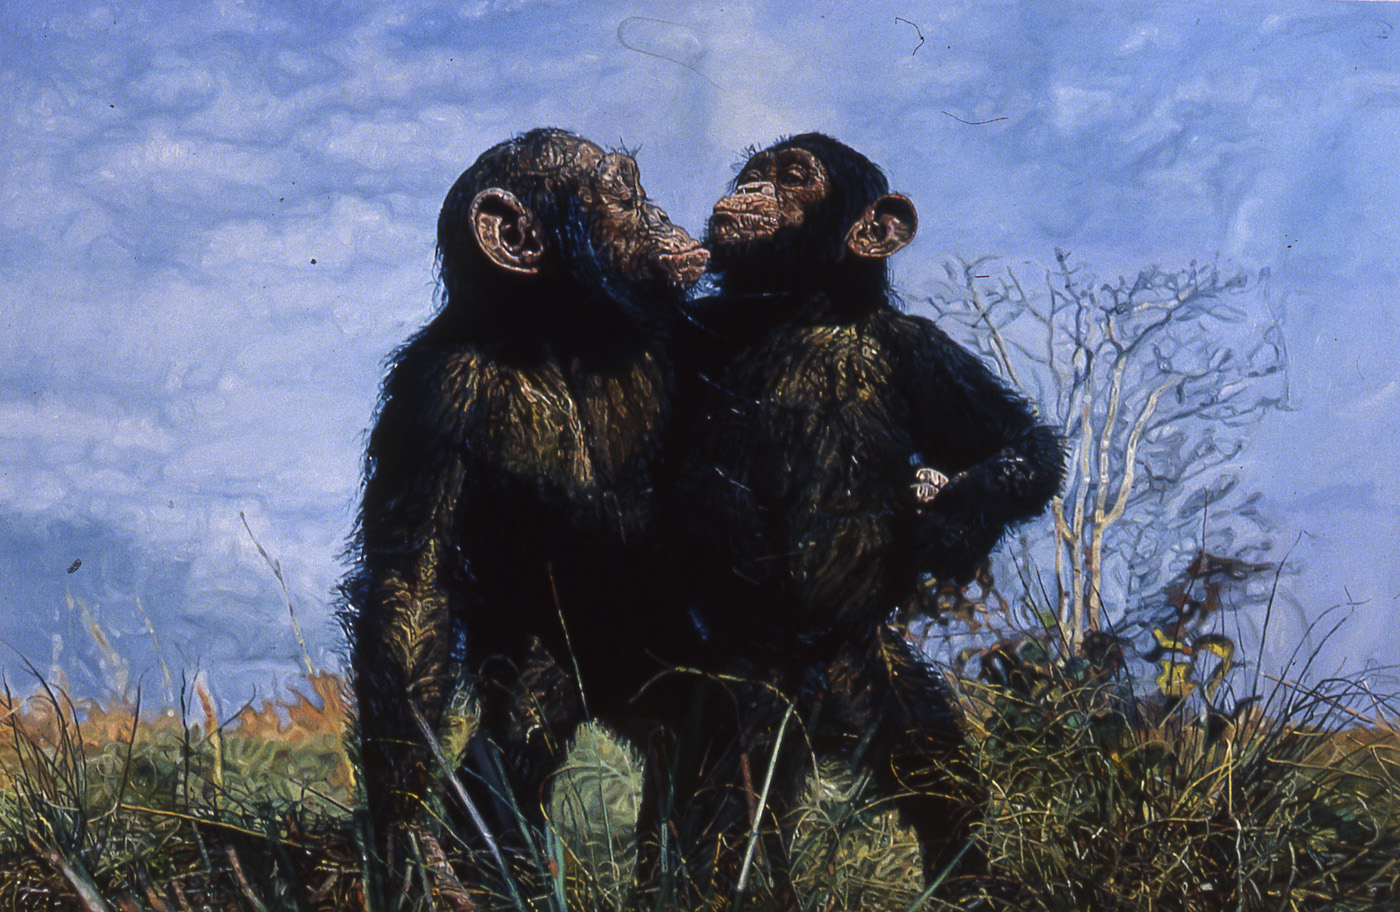 Ulrich Lamsfuss  Untitled (Chimps), 2002 Oil on canvas 90 1/2 x 63 inches 230 x 160 cm